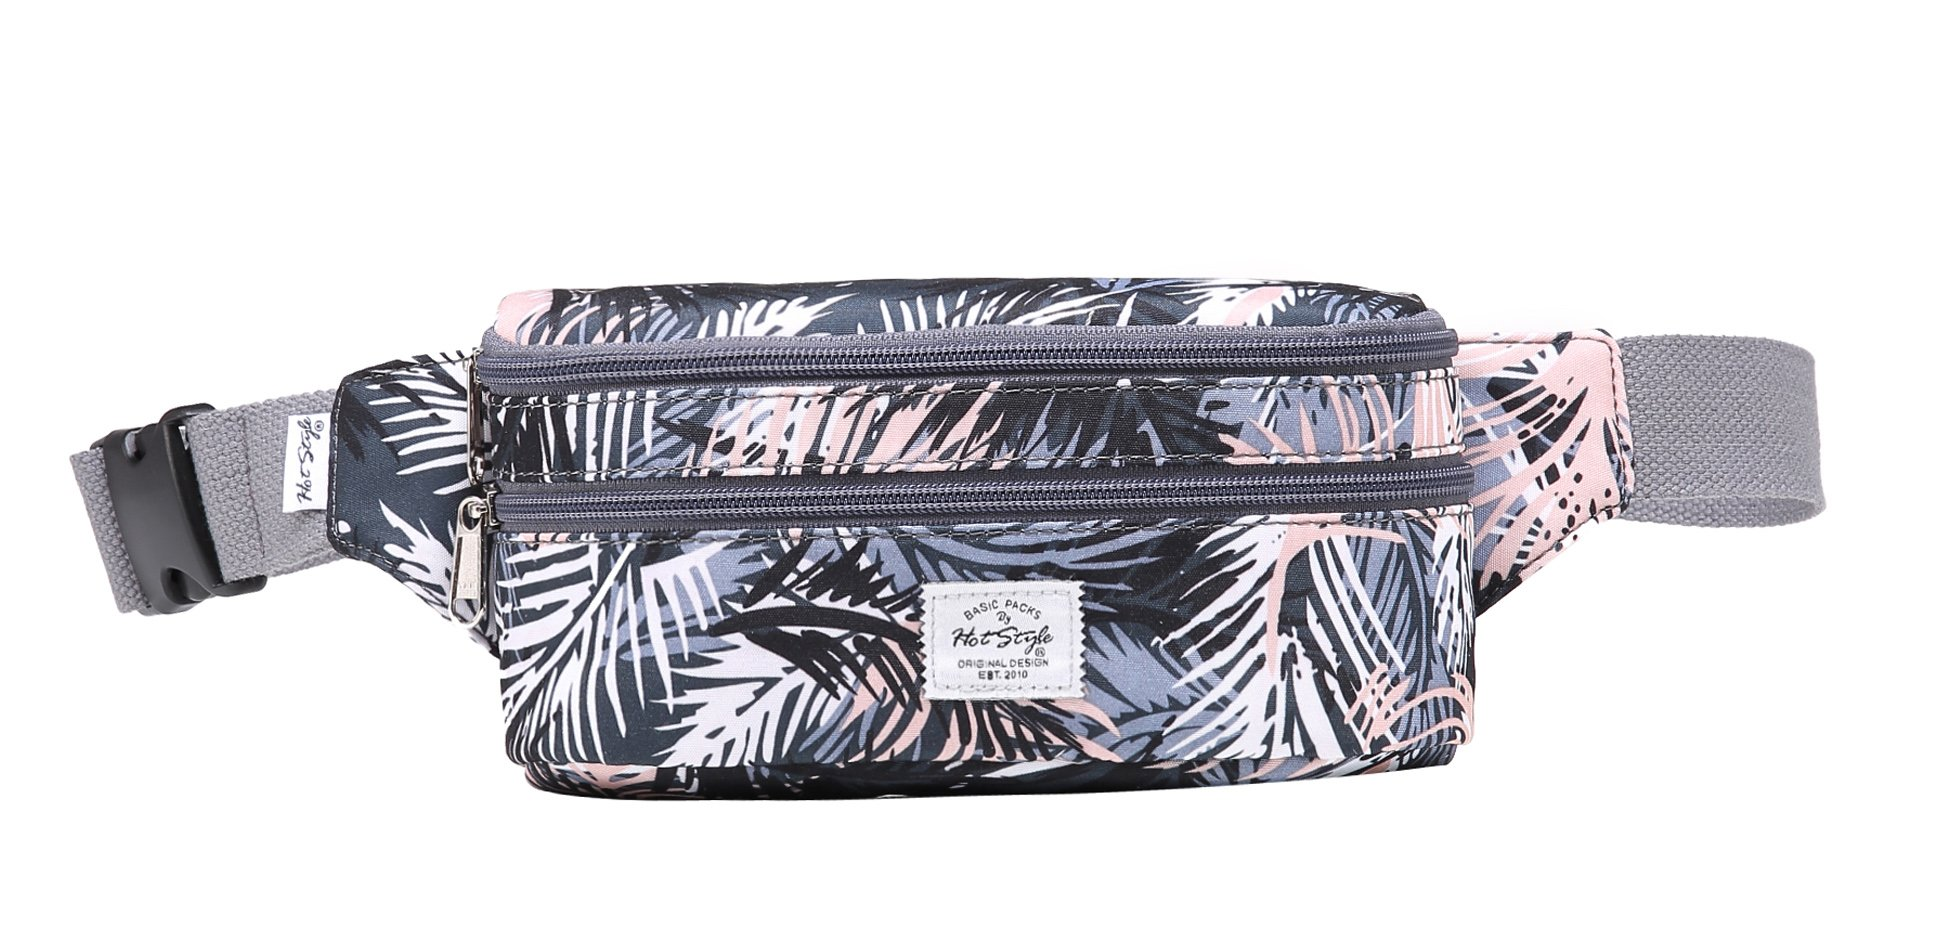 521s Fashion Waist Bag Cute Fanny Pack | 8.0''x2.5''x4.3'' | Tropical, Grey